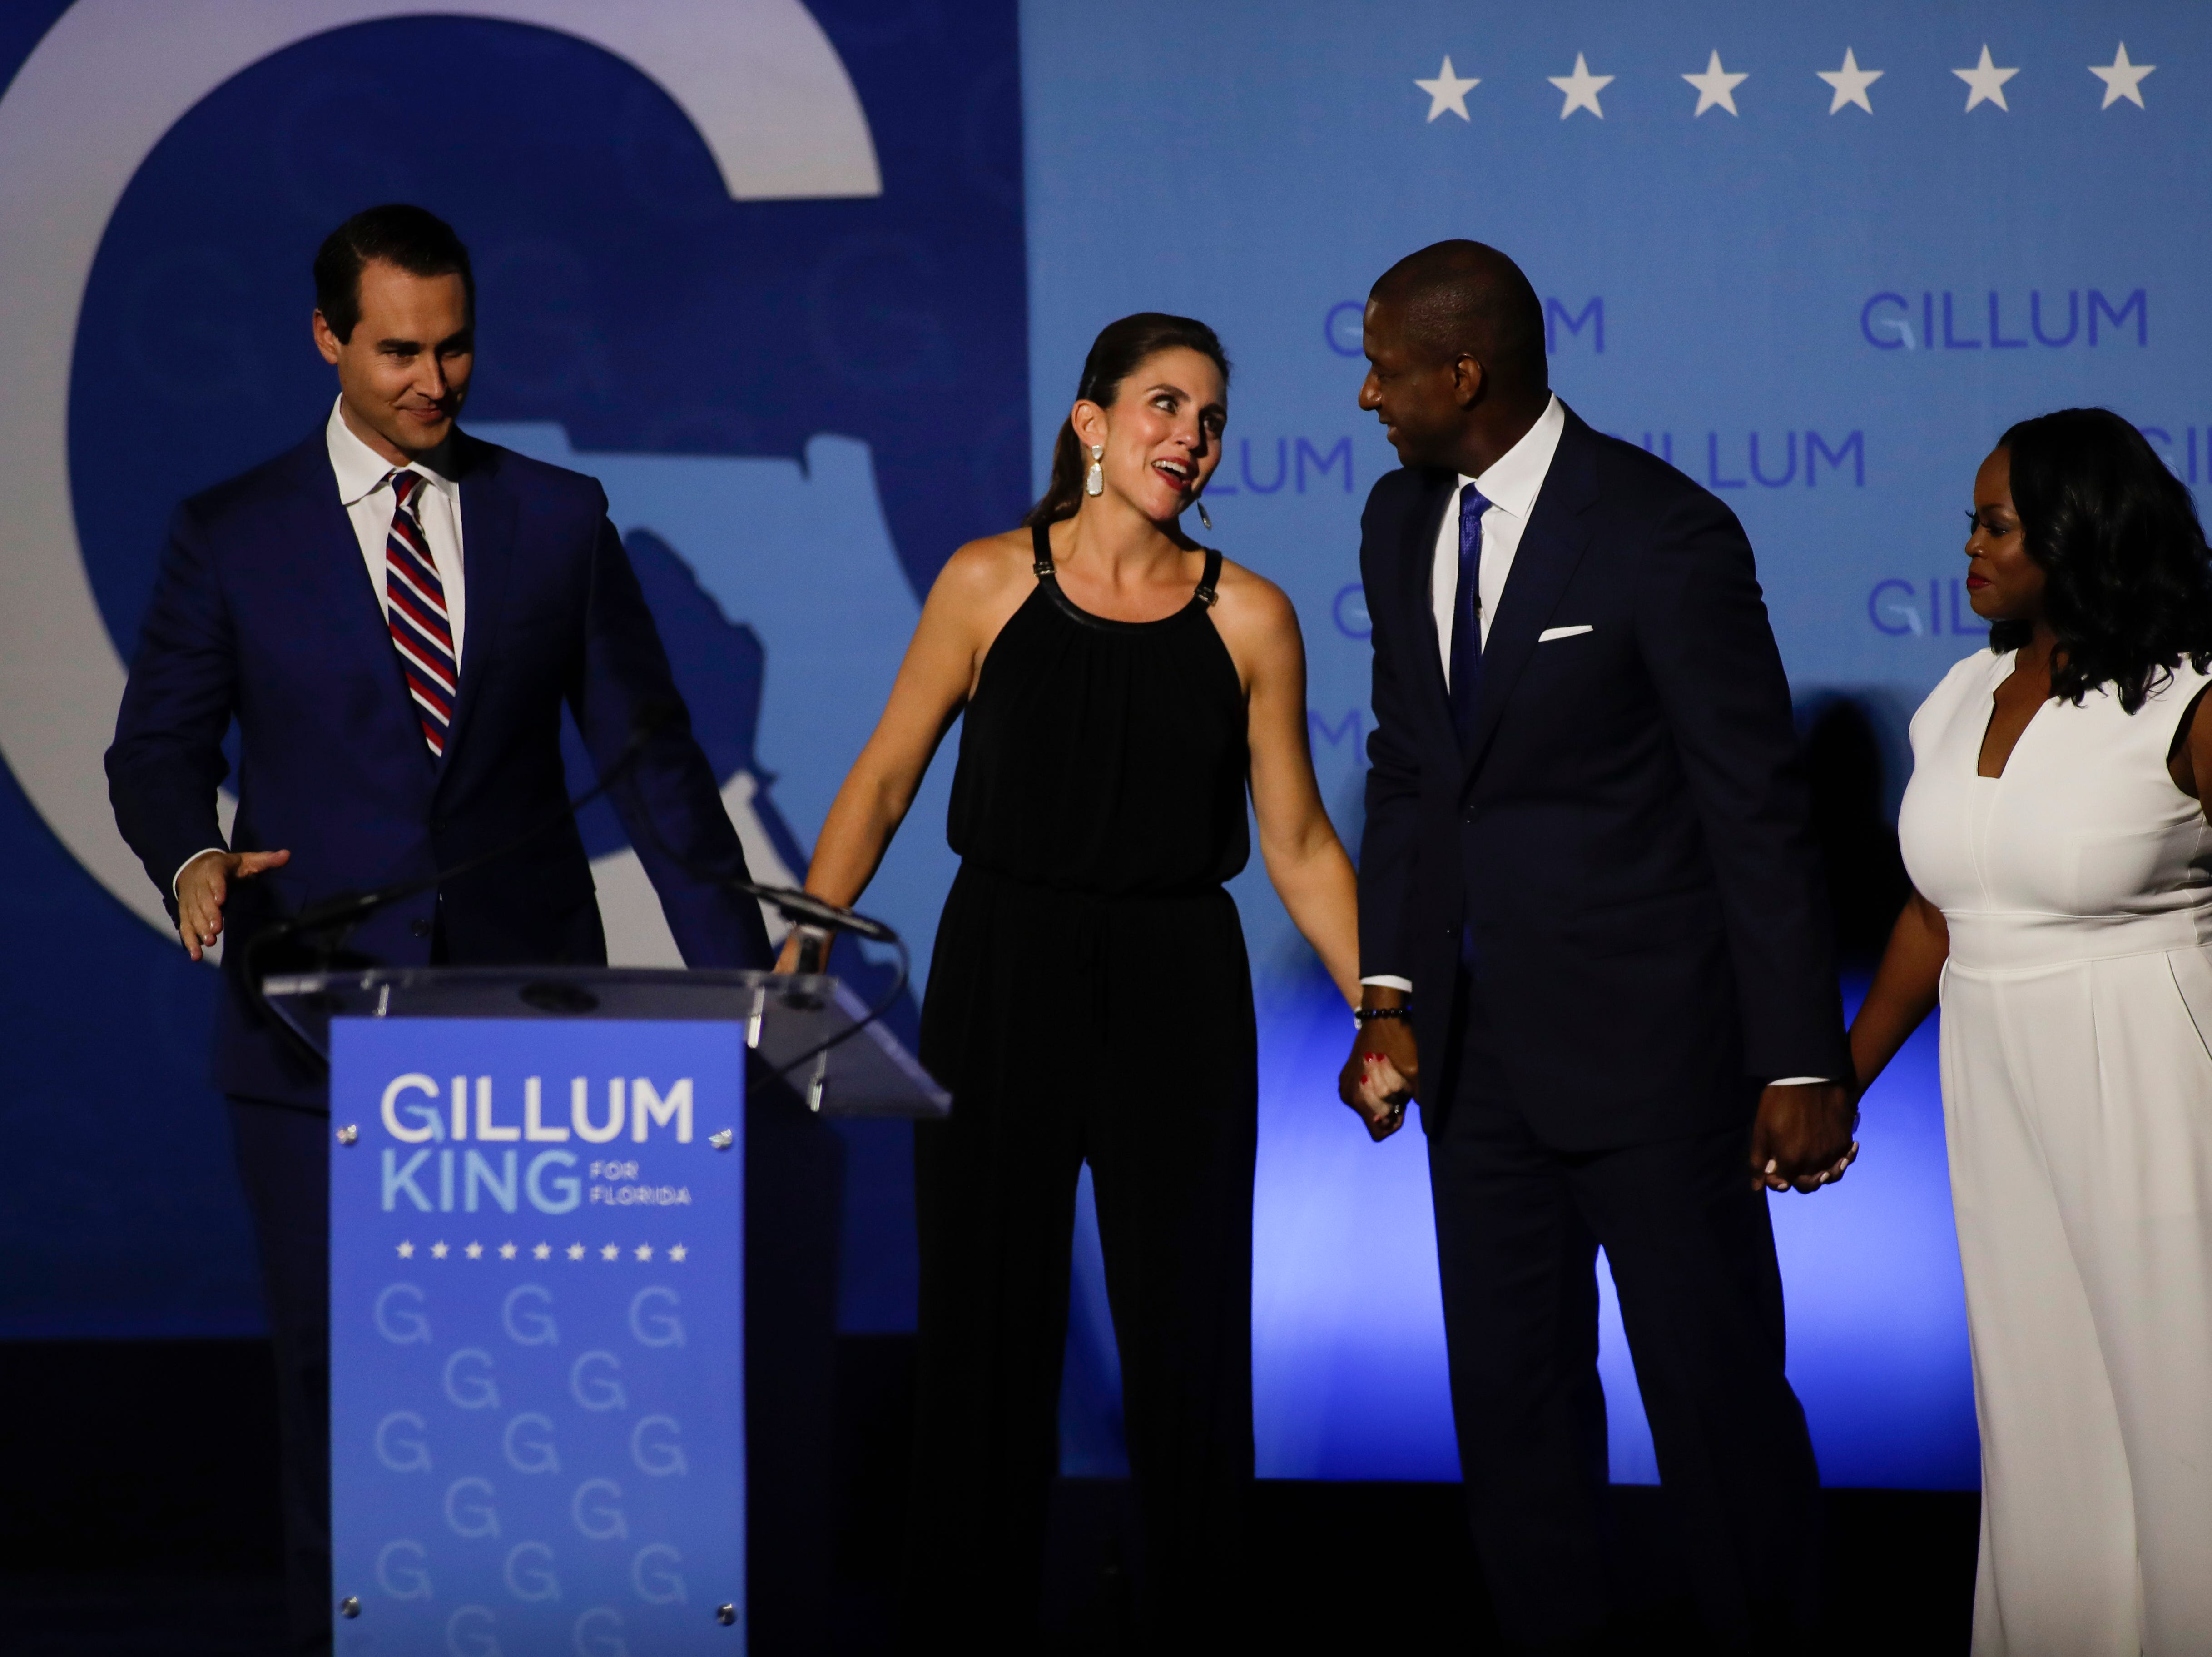 Chris King, Kristen King, Andrew Gillum and R. Jai Gillum appear on stage as Gillum makes his concession speech in front of Lee Hall on the Florida A&M campus in Tallahassee, Fla. after losing the governor's race to Ron DeSantis Tuesday, Nov. 6, 2018.